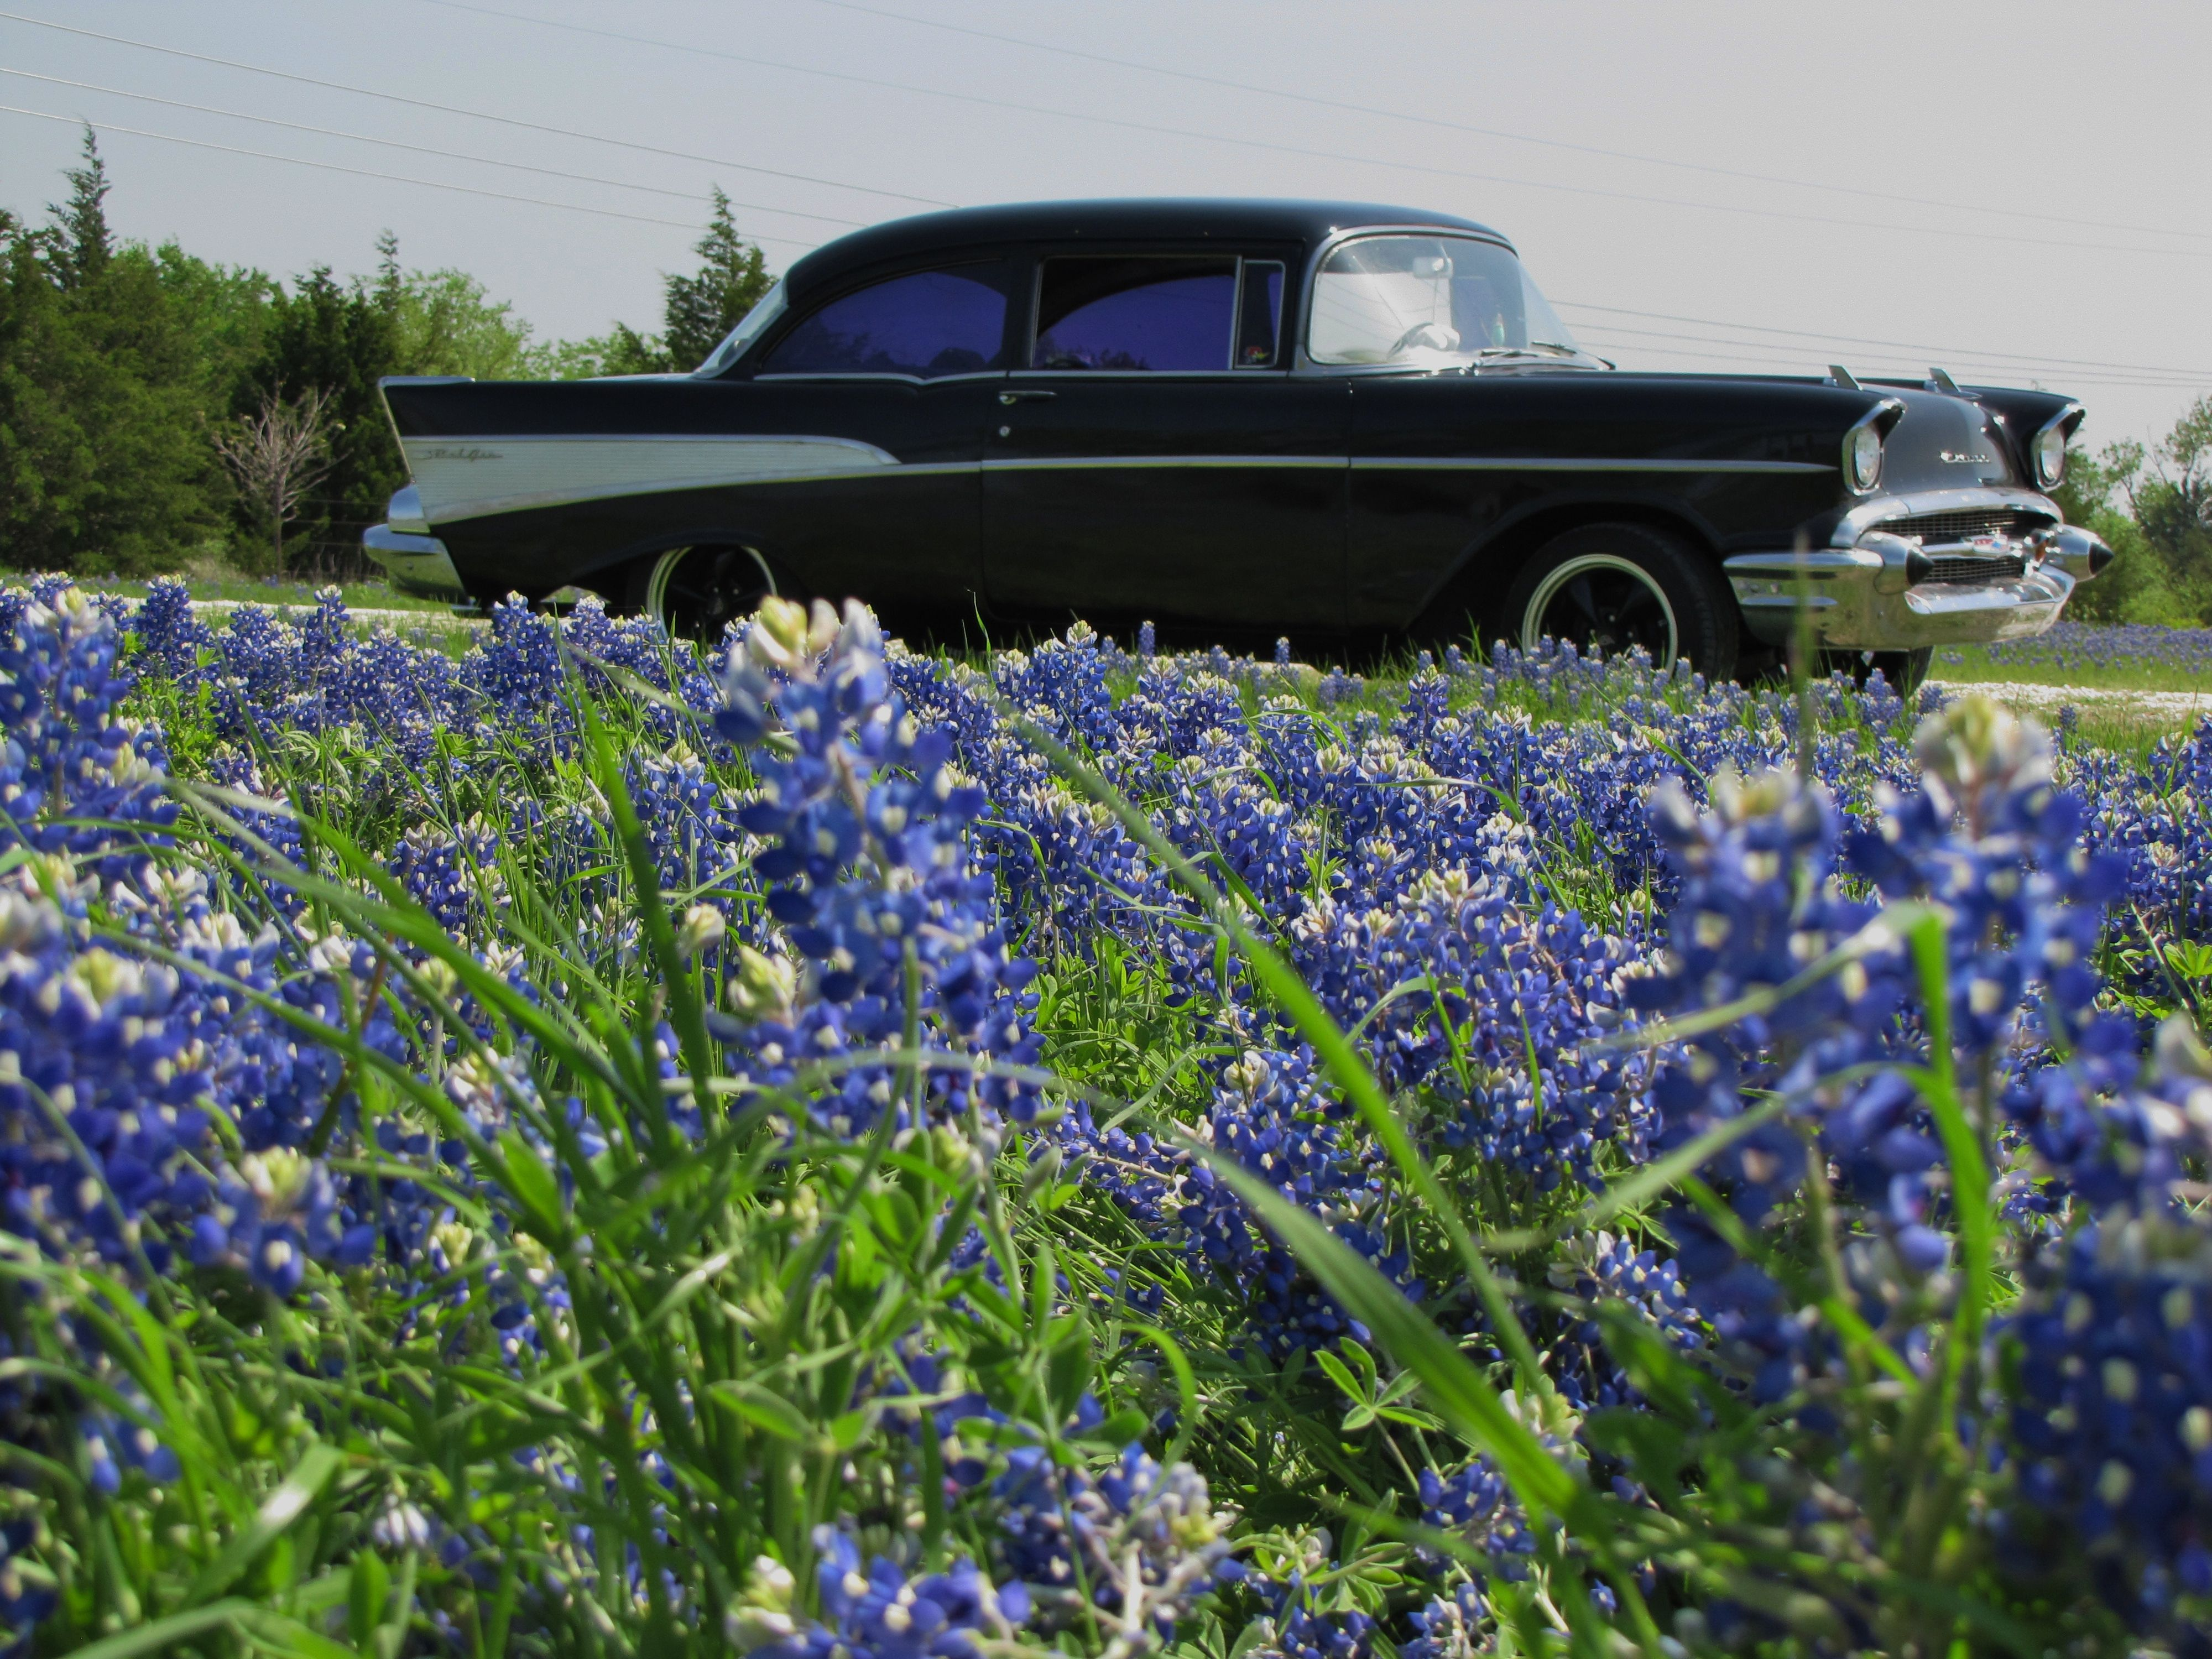 Took the '57 for a drive to the Denison Dam to see the bluebonnets.